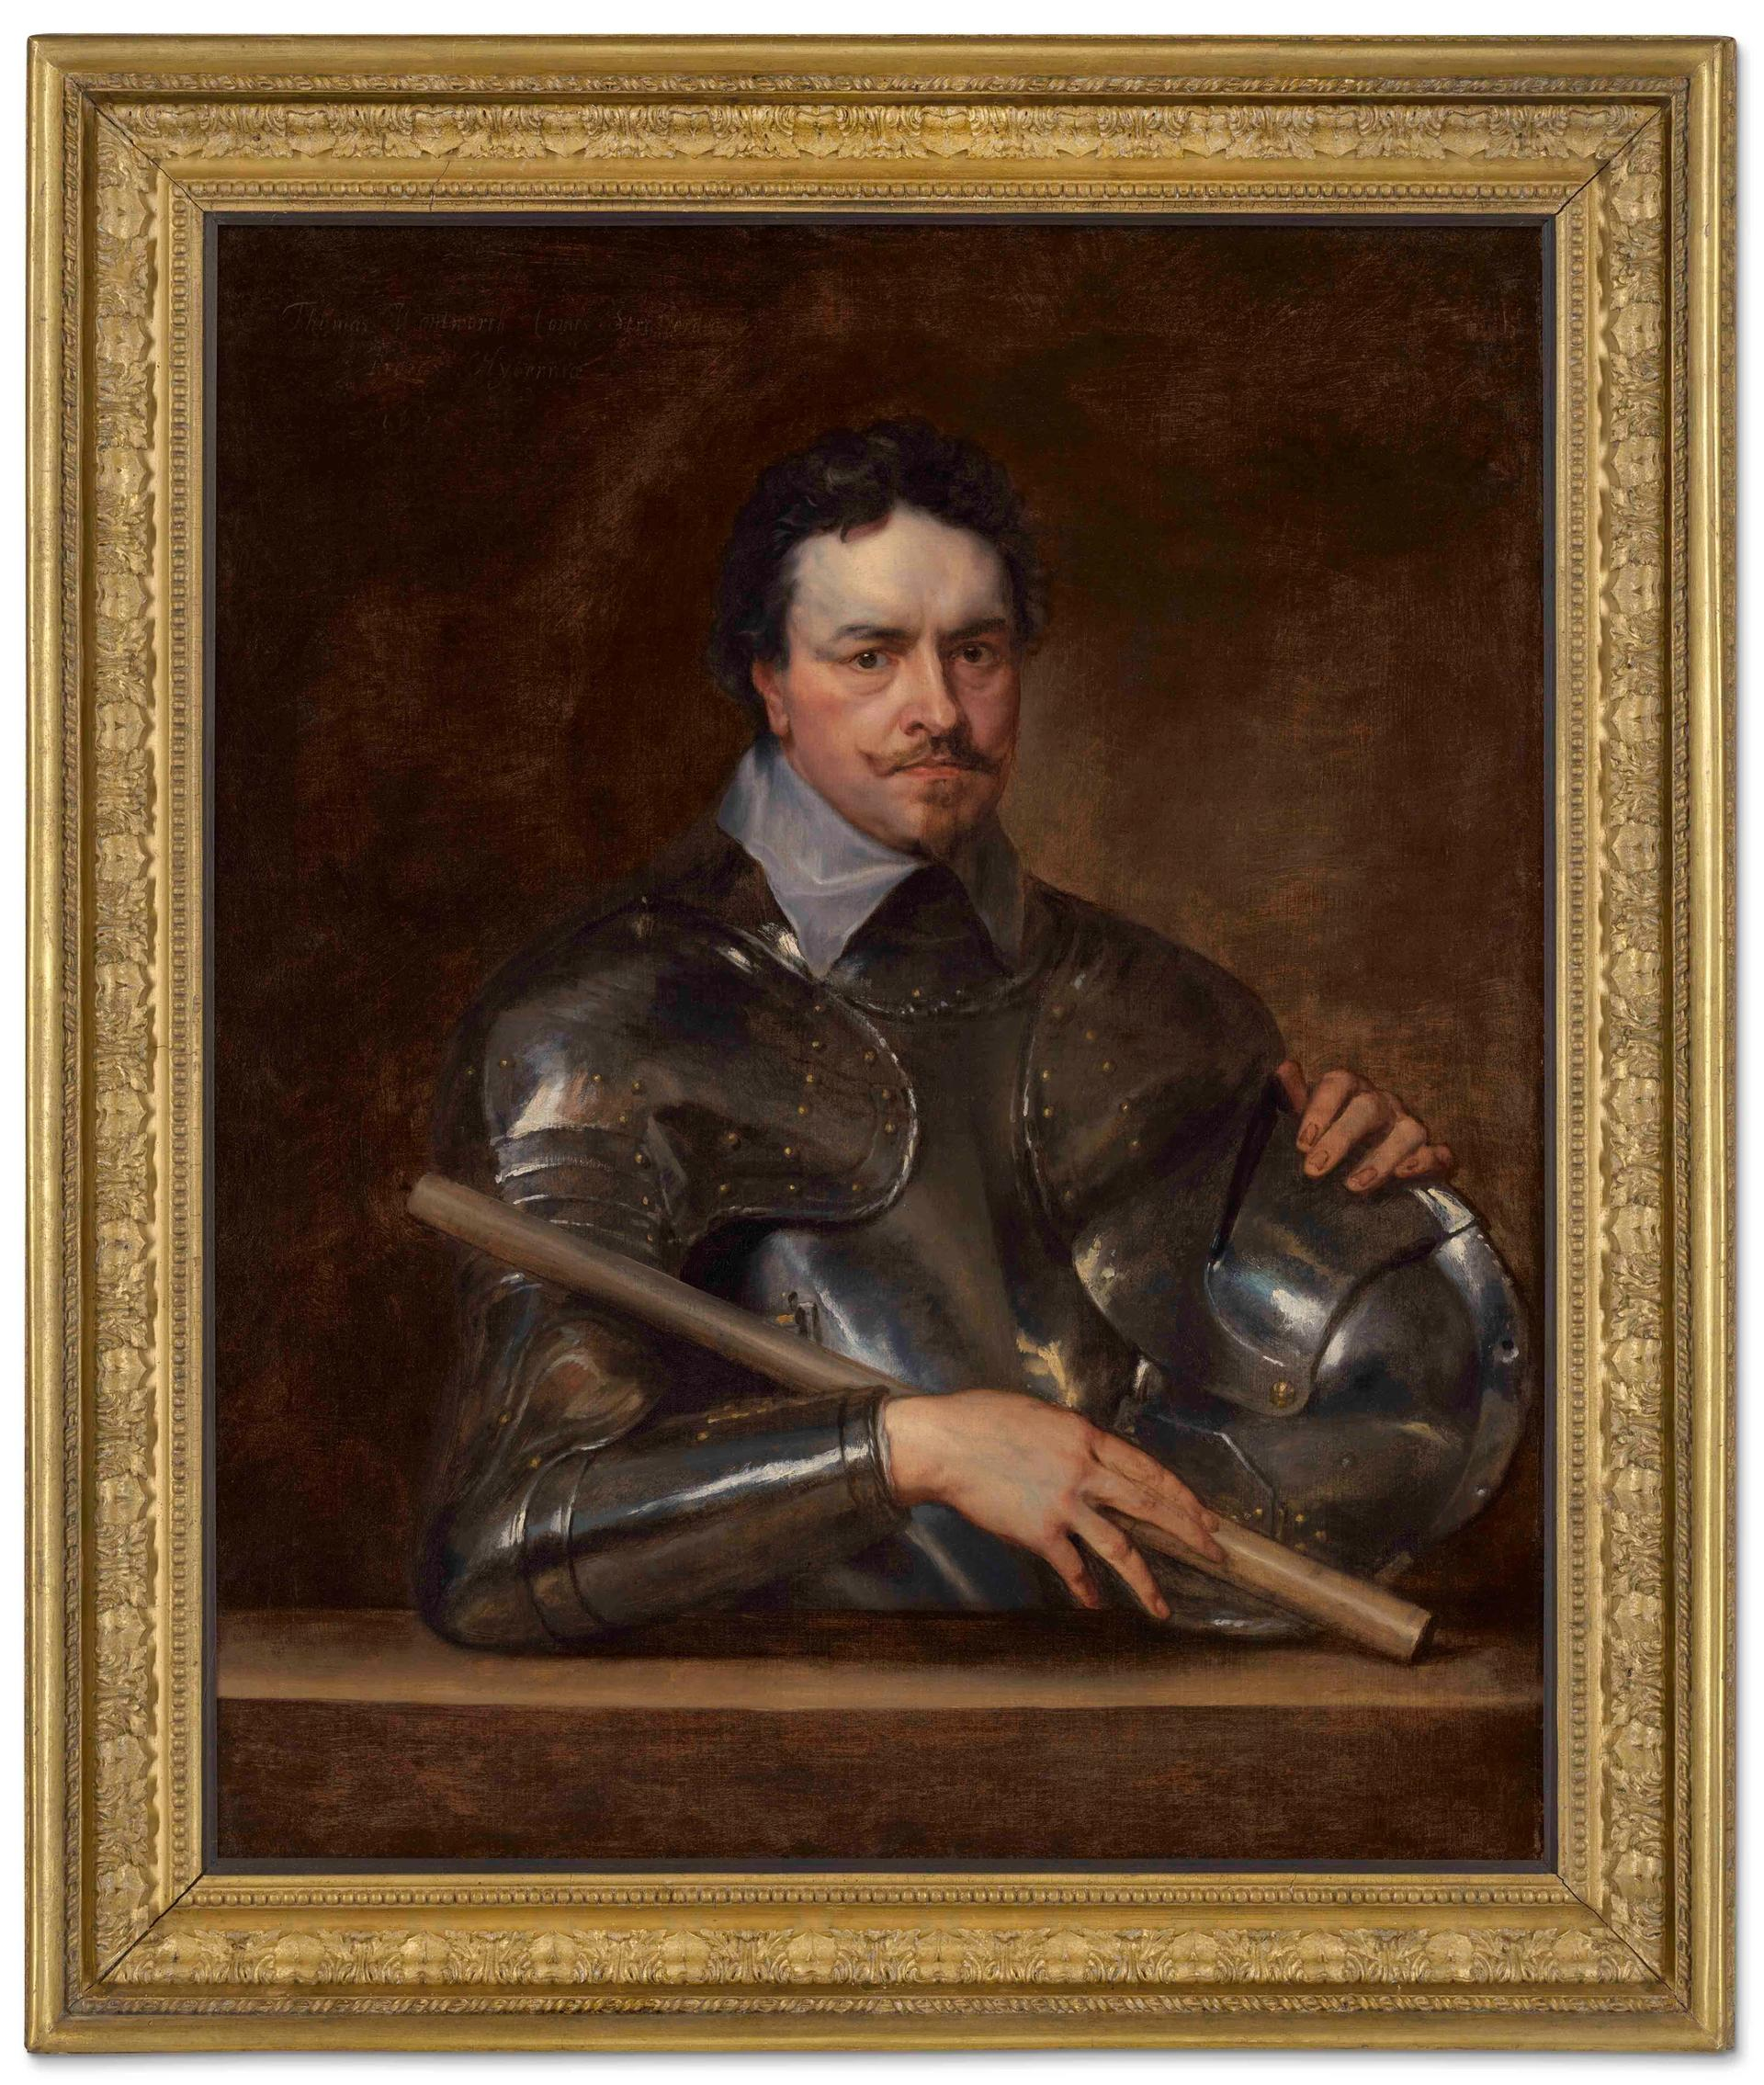 Portrait of Thomas Wentworth, 1st Earl of Strafford, by Anthony Van Dyck Courtesy of Christie's